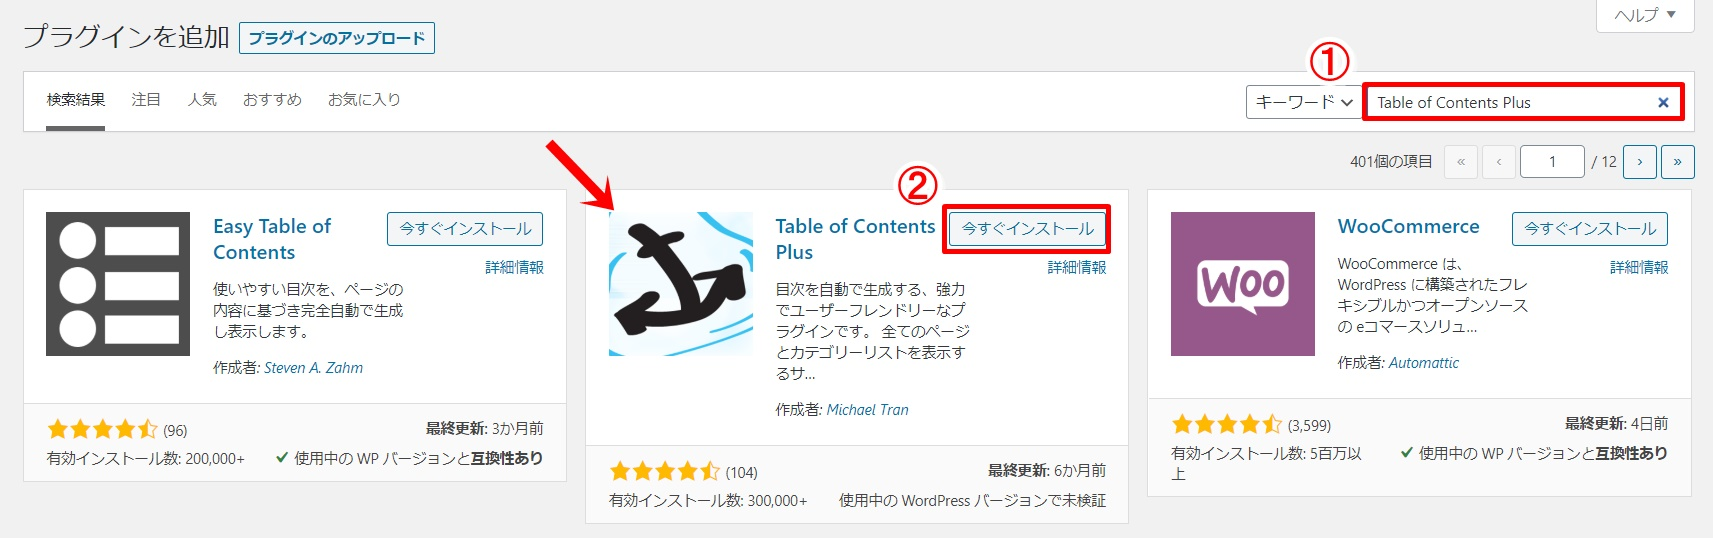 Table of Contents Plusの設定方法2